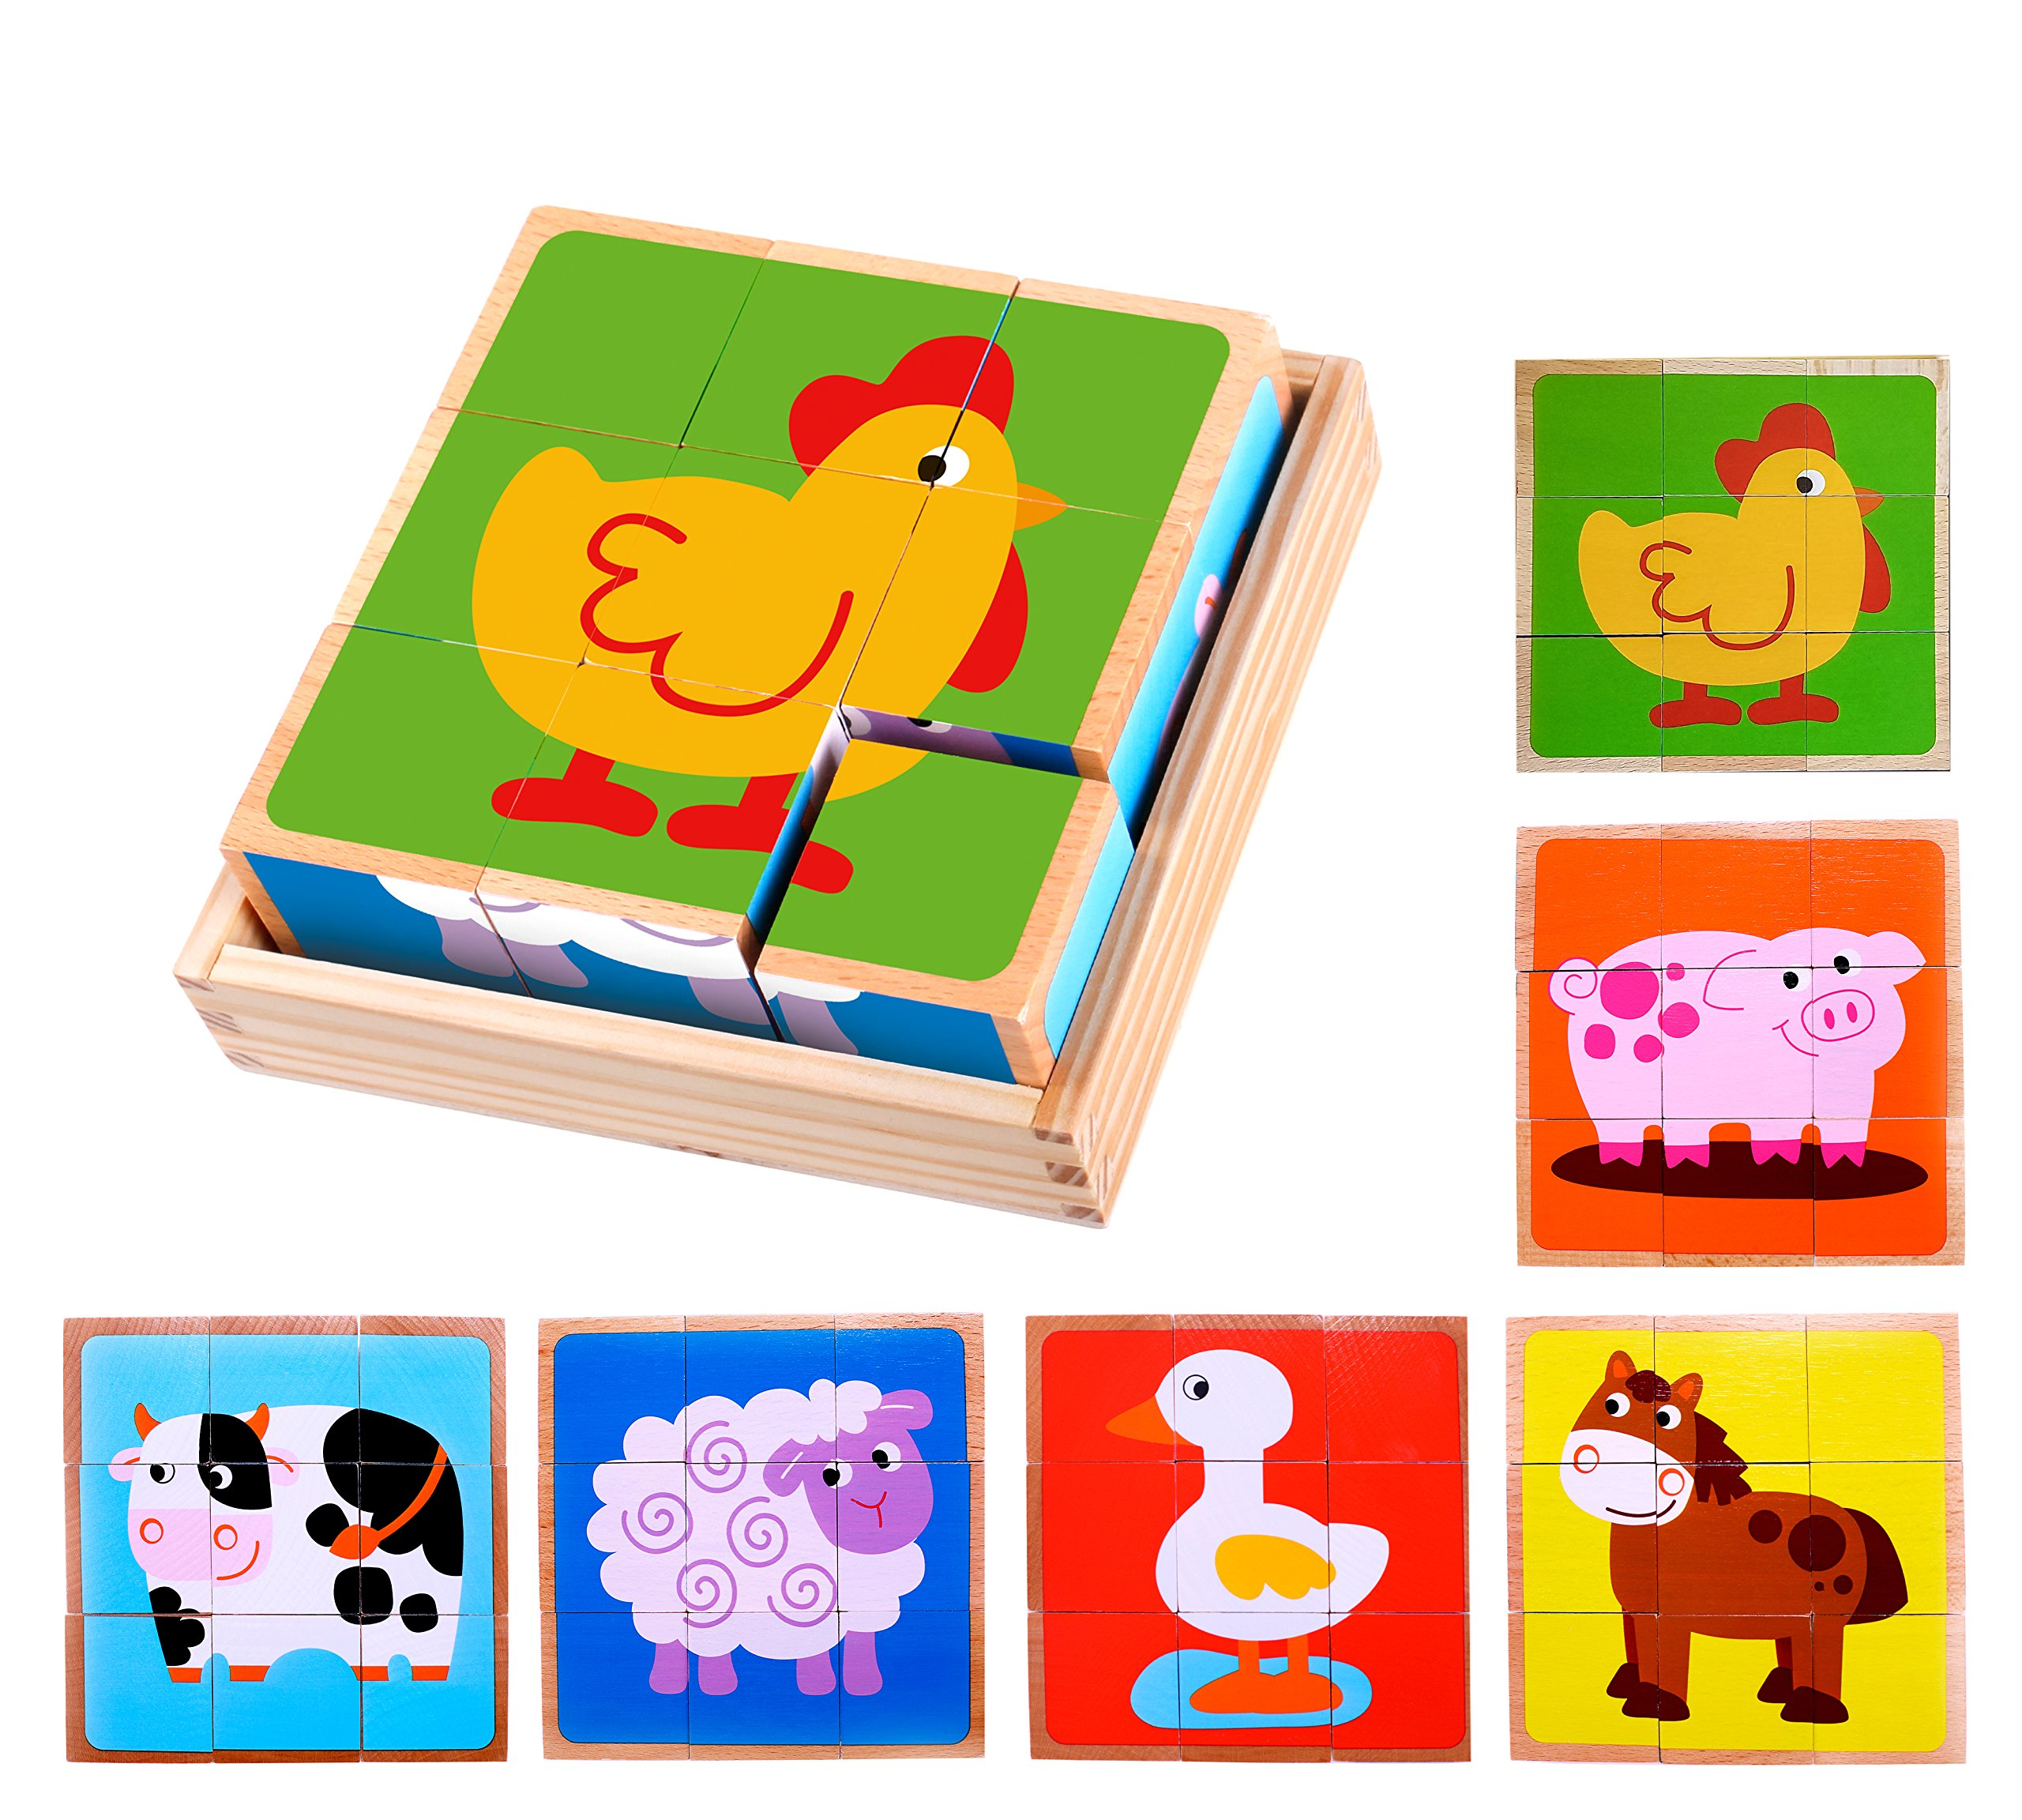 Premium Barnyard Animal Block Puzzle (6 in 1) with Wood Storage Tray for Preschool Age Toddlers 3, 4 - Colorful Solid Wooden Small Cube Farm Animal Pieces - Horse, Pig, Cow, Sheep, Duck, Chicken by Cubbie Lee (Image #1)